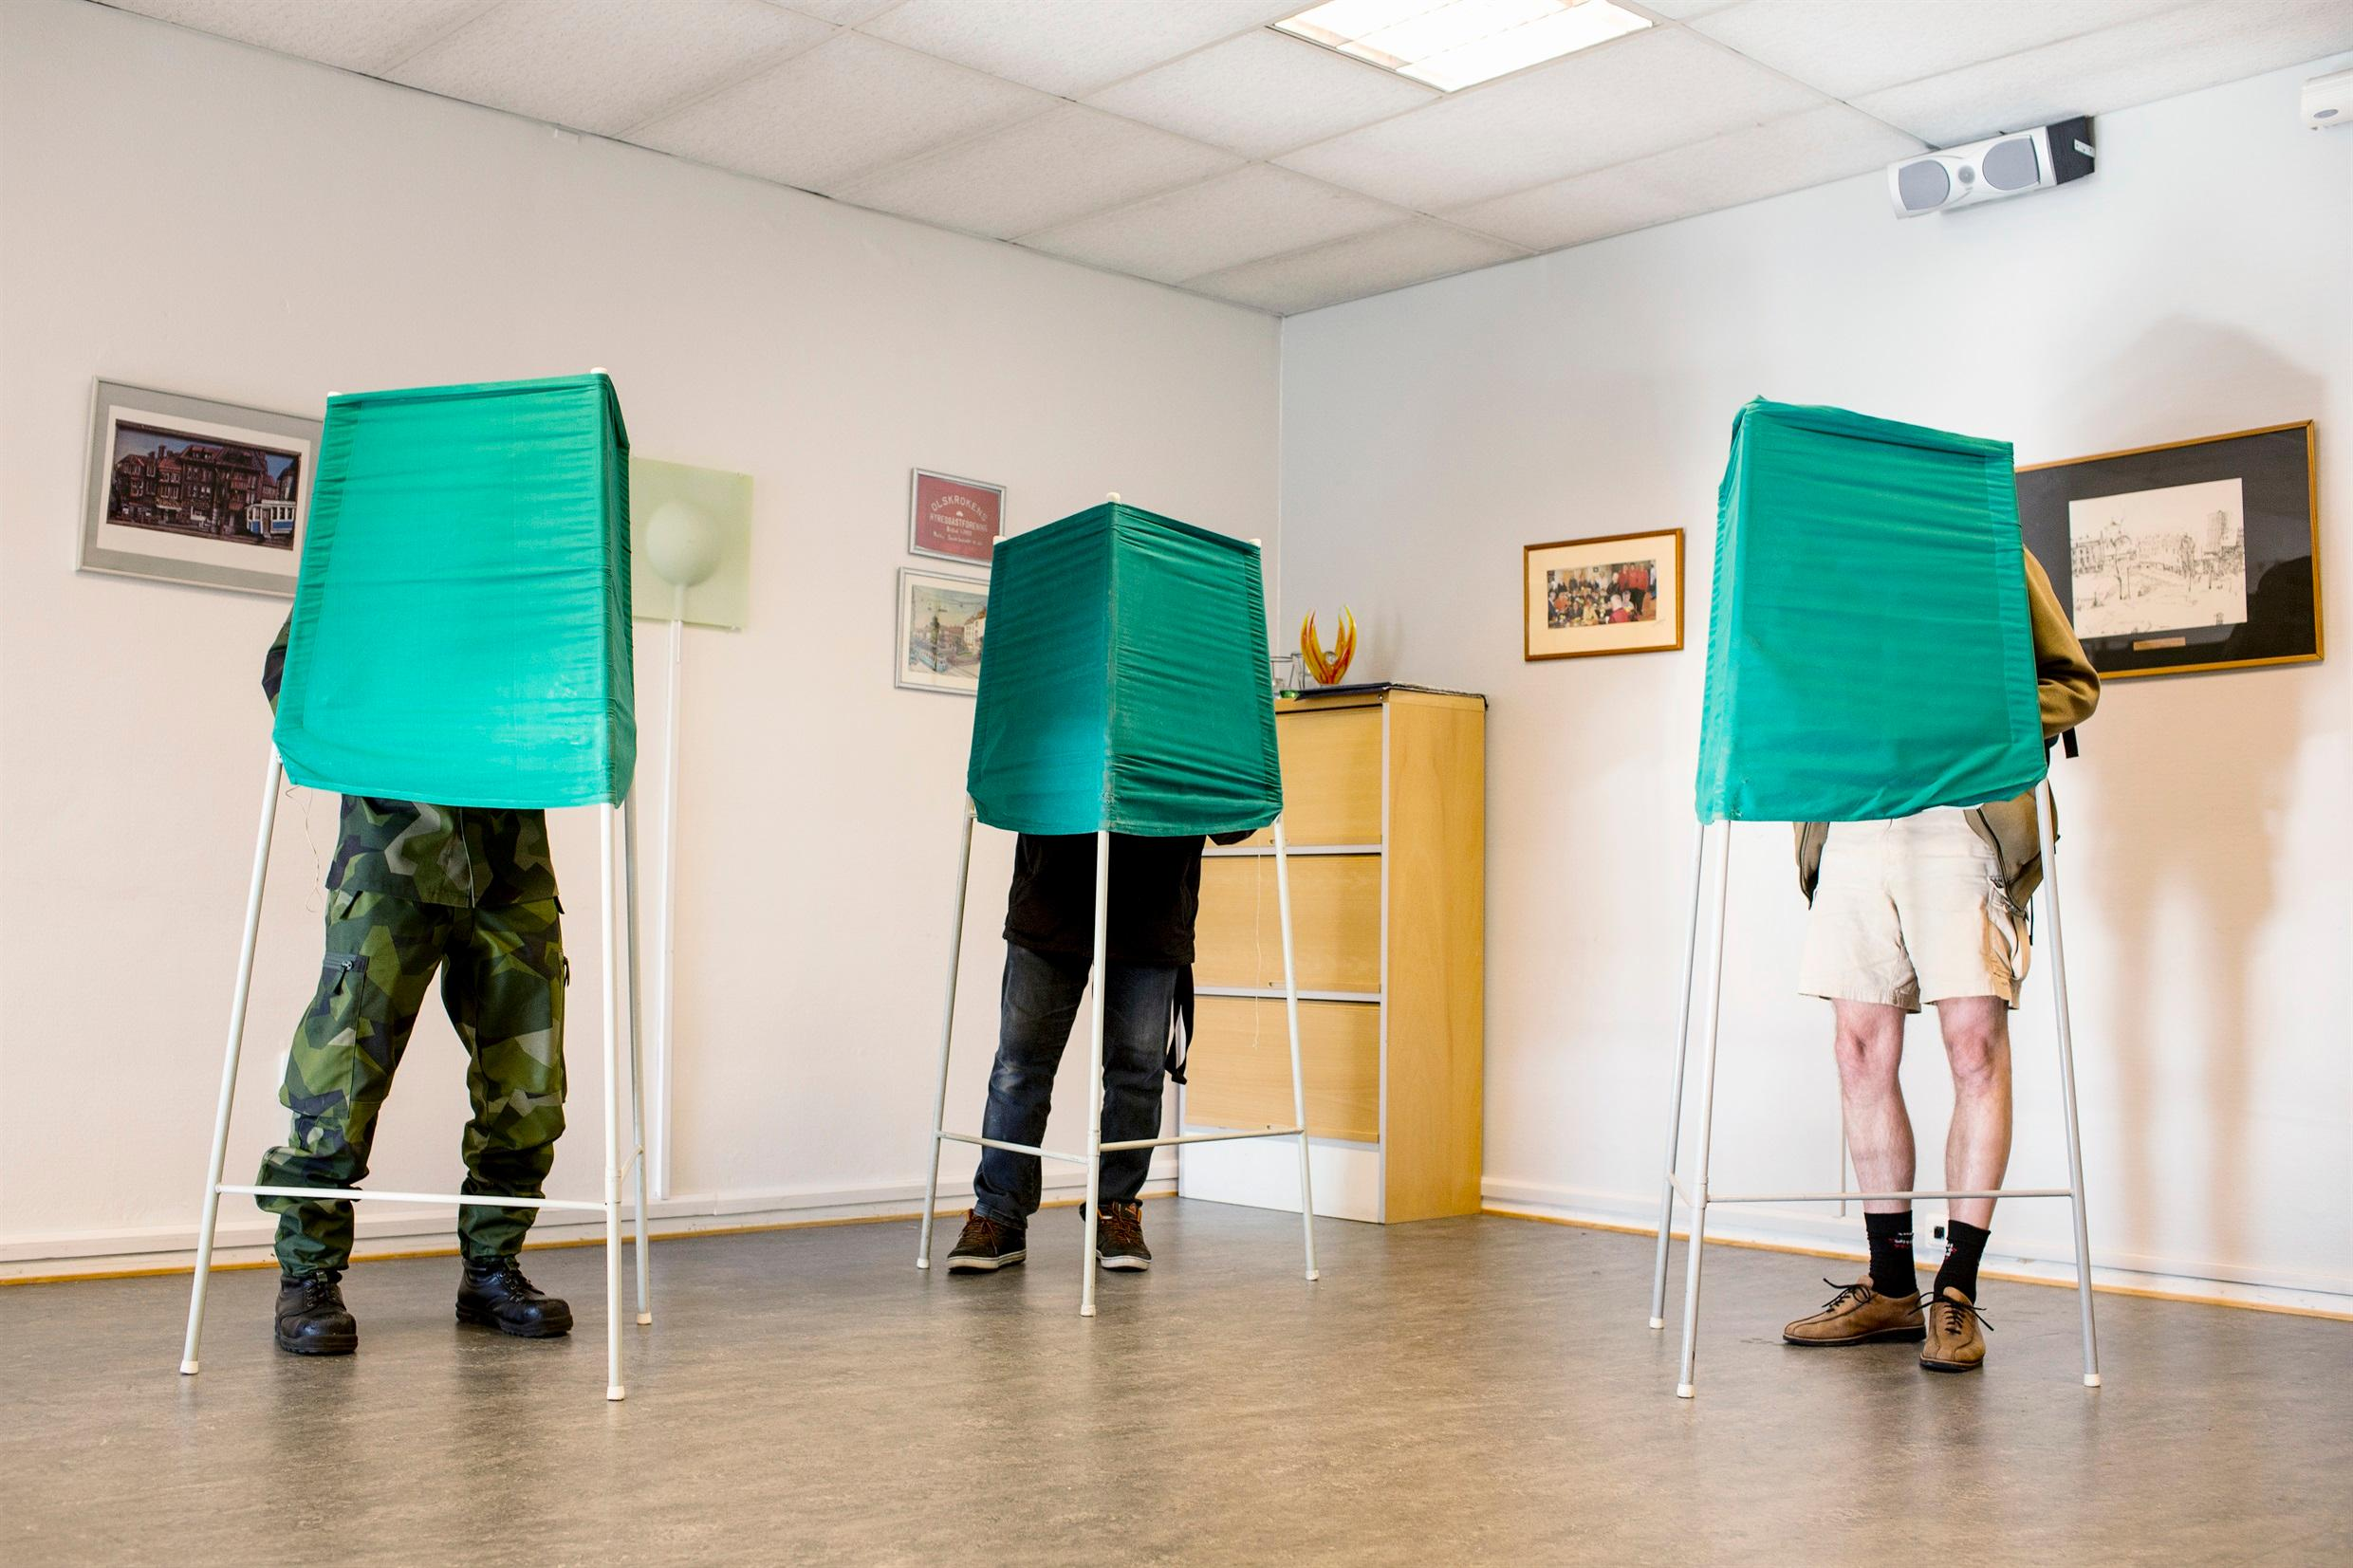 A polling station, where all we can see is three people's legs beneth green screens.